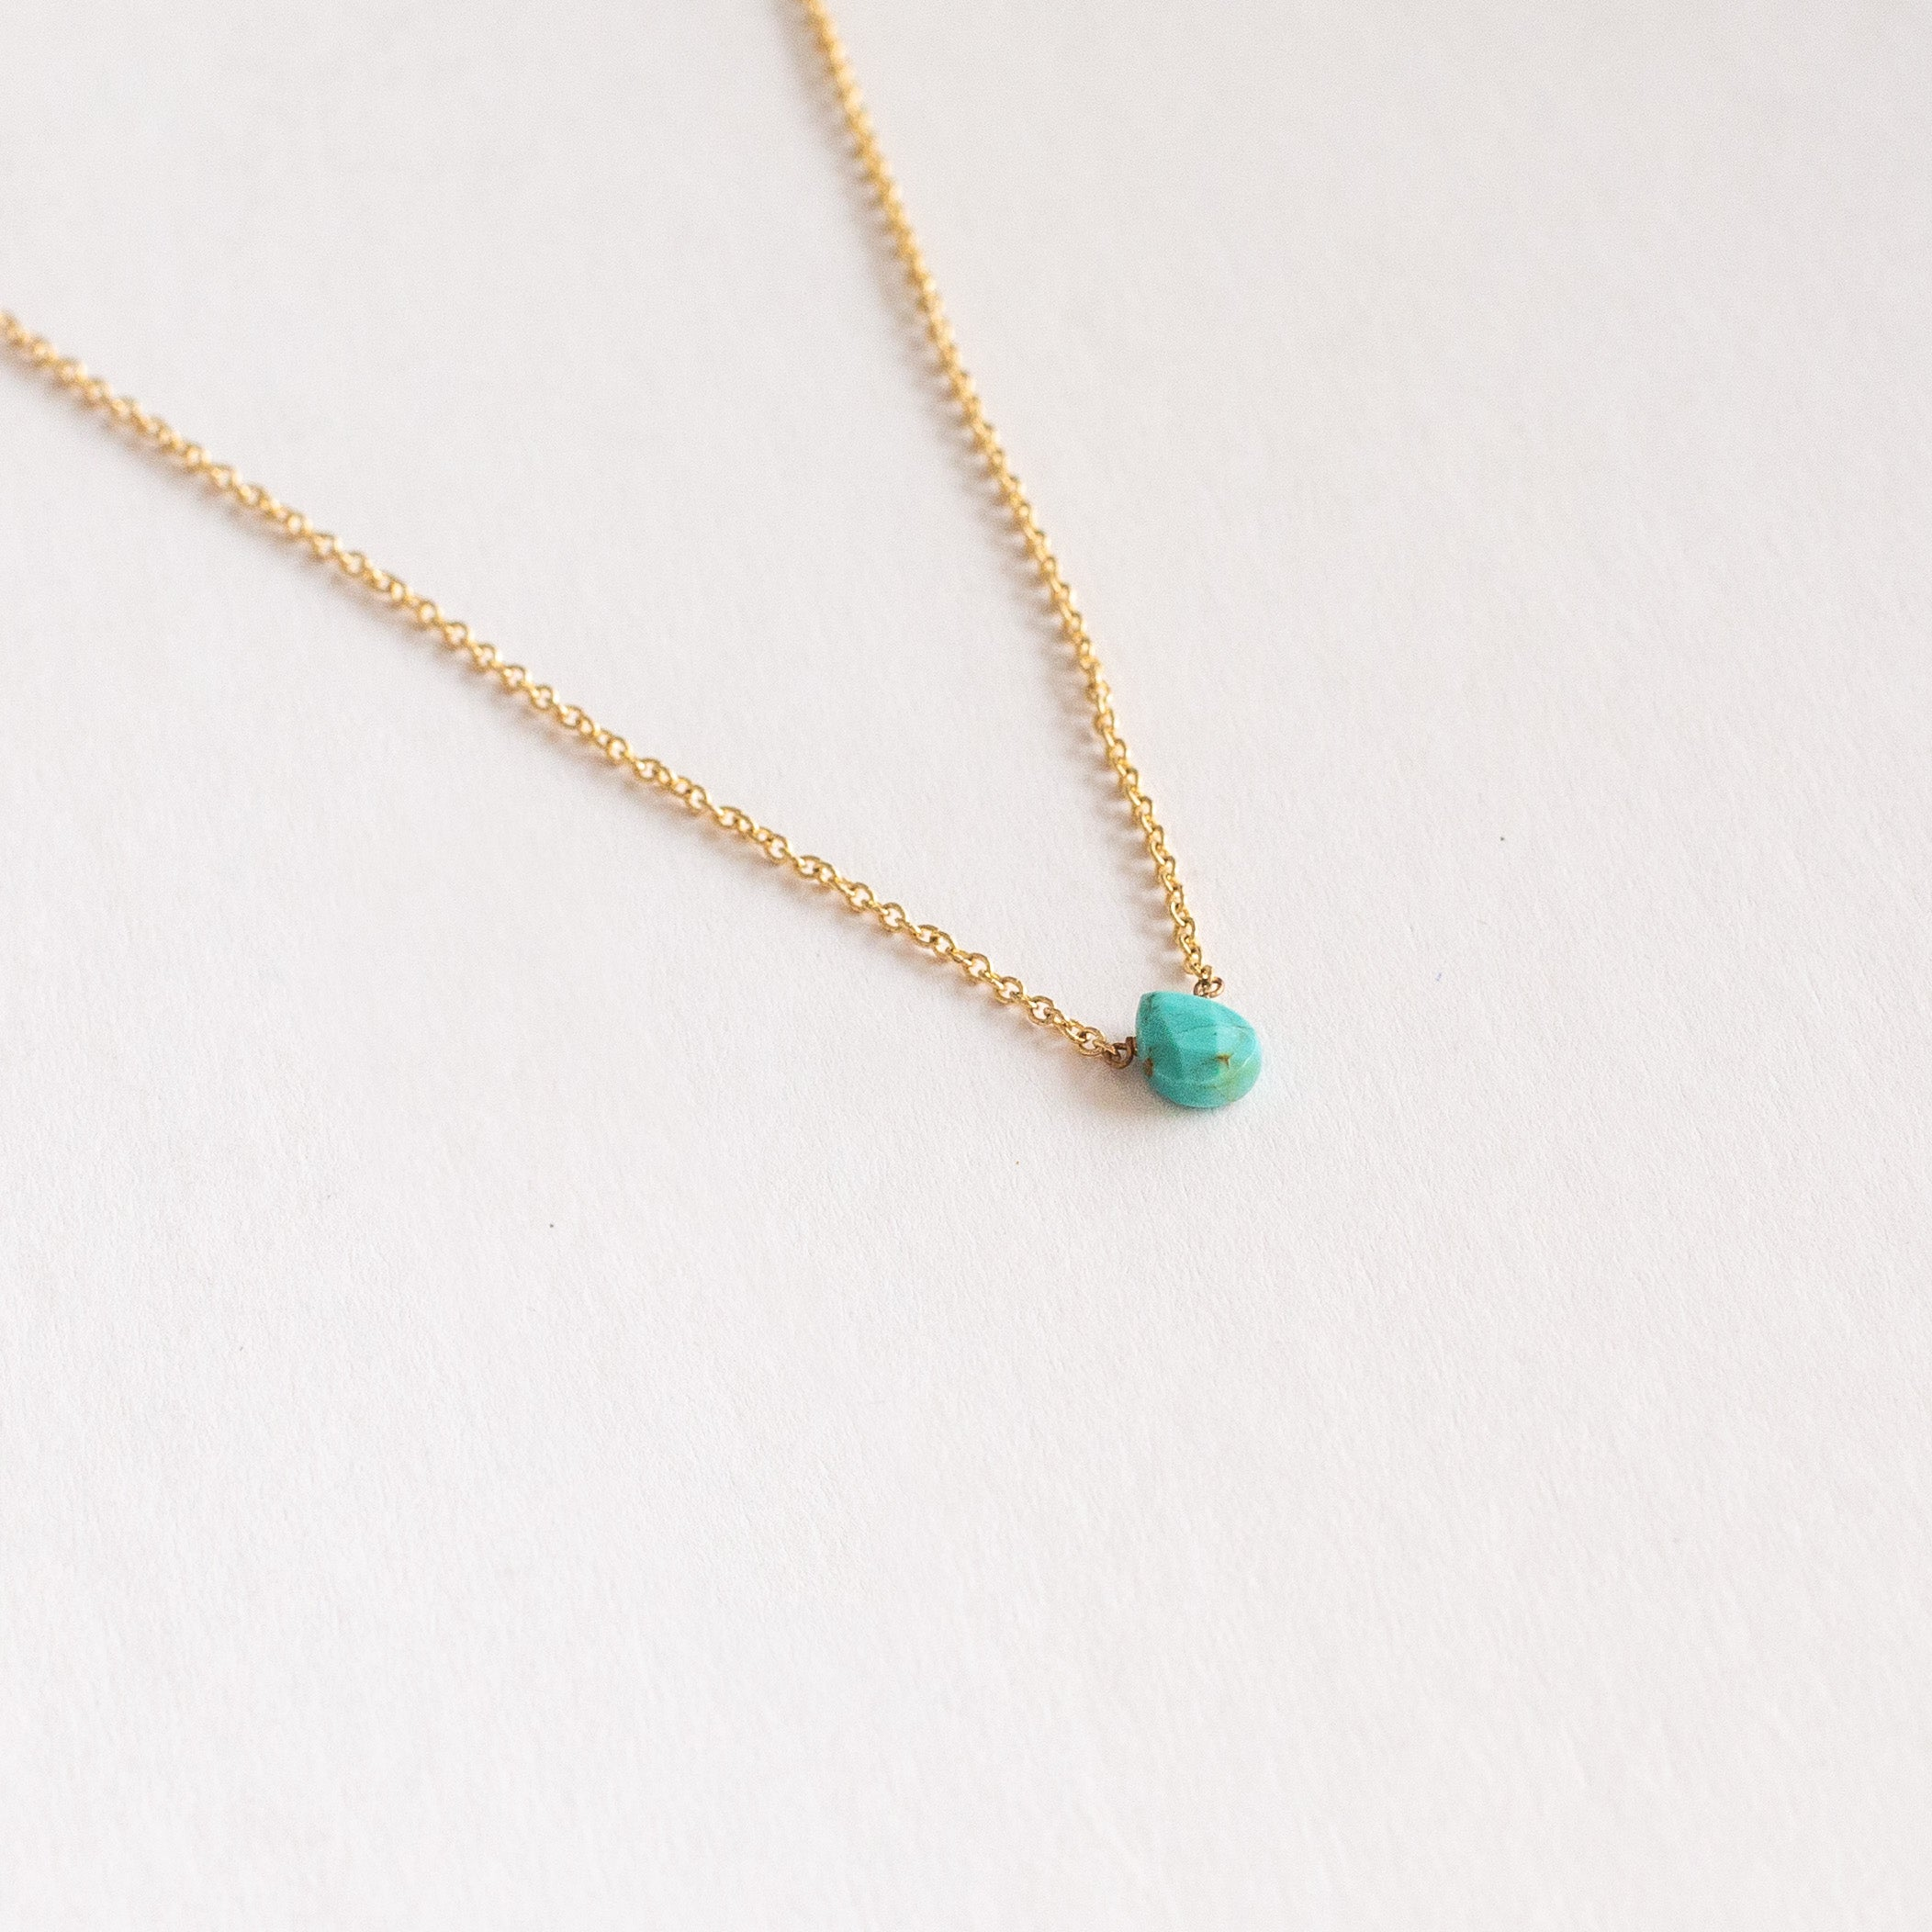 Faceted tear drop Turquoise necklace